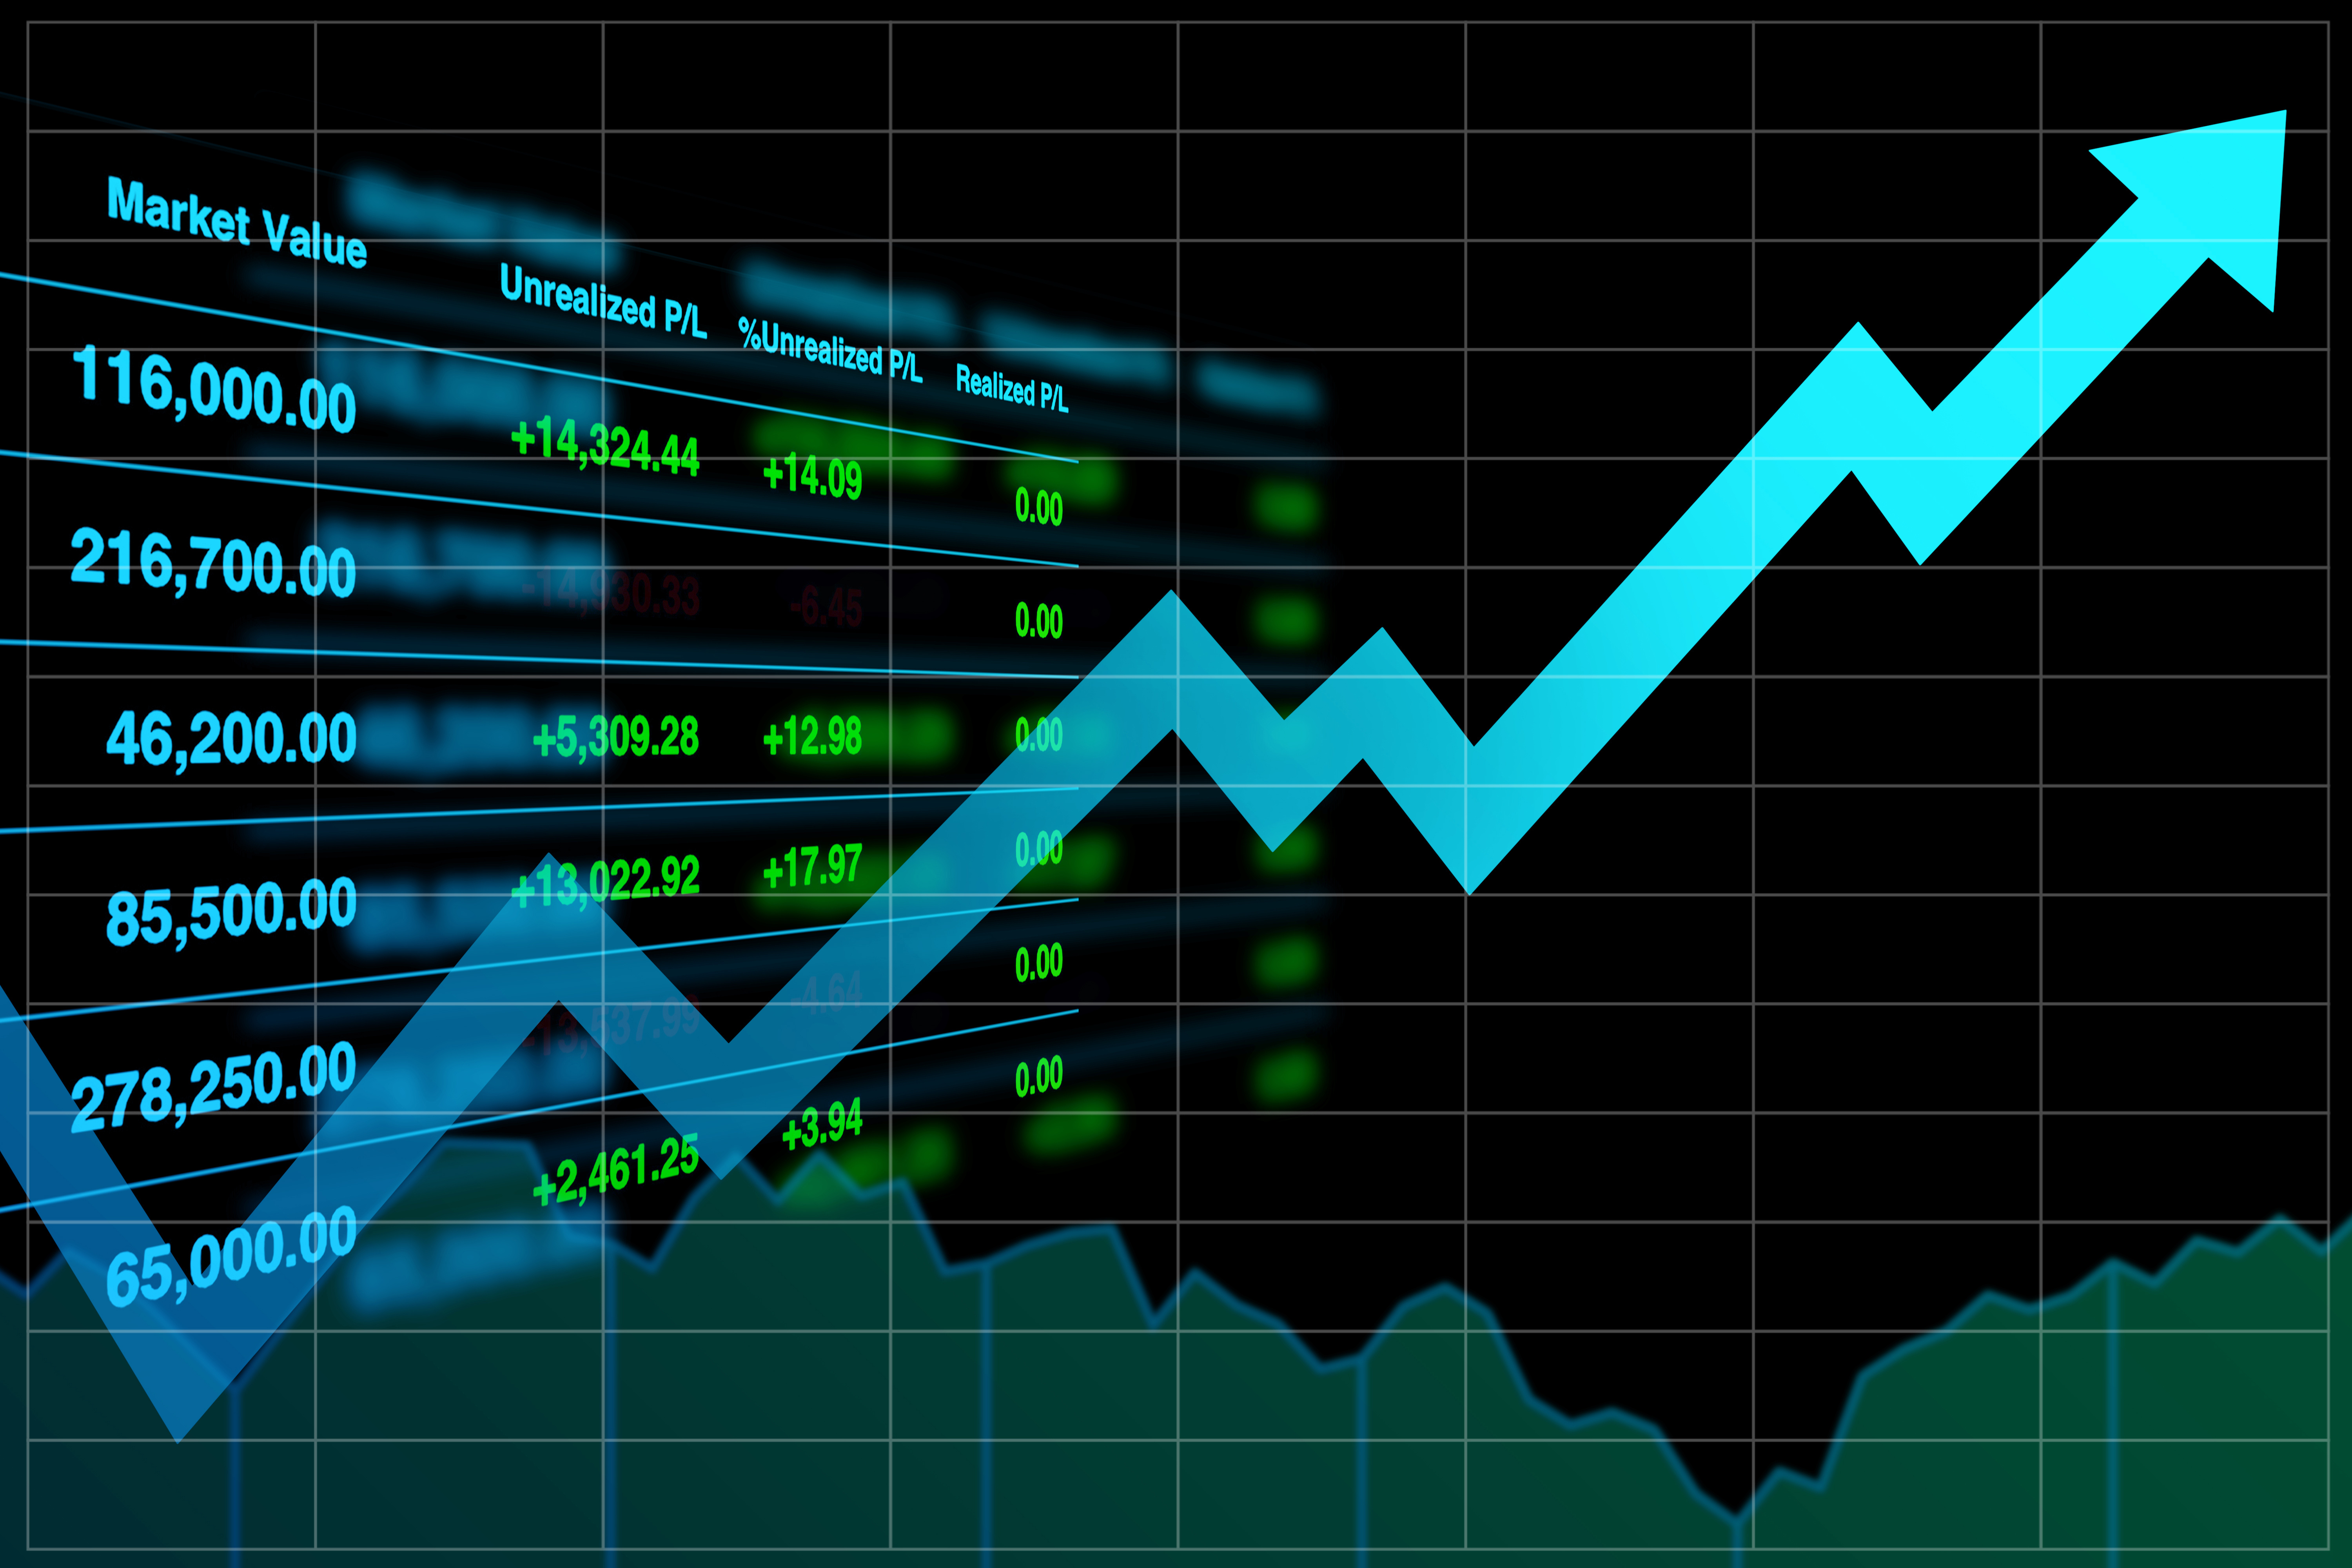 Top Growth Stocks and Best Blue-Chip Stocks to Buy in 2019